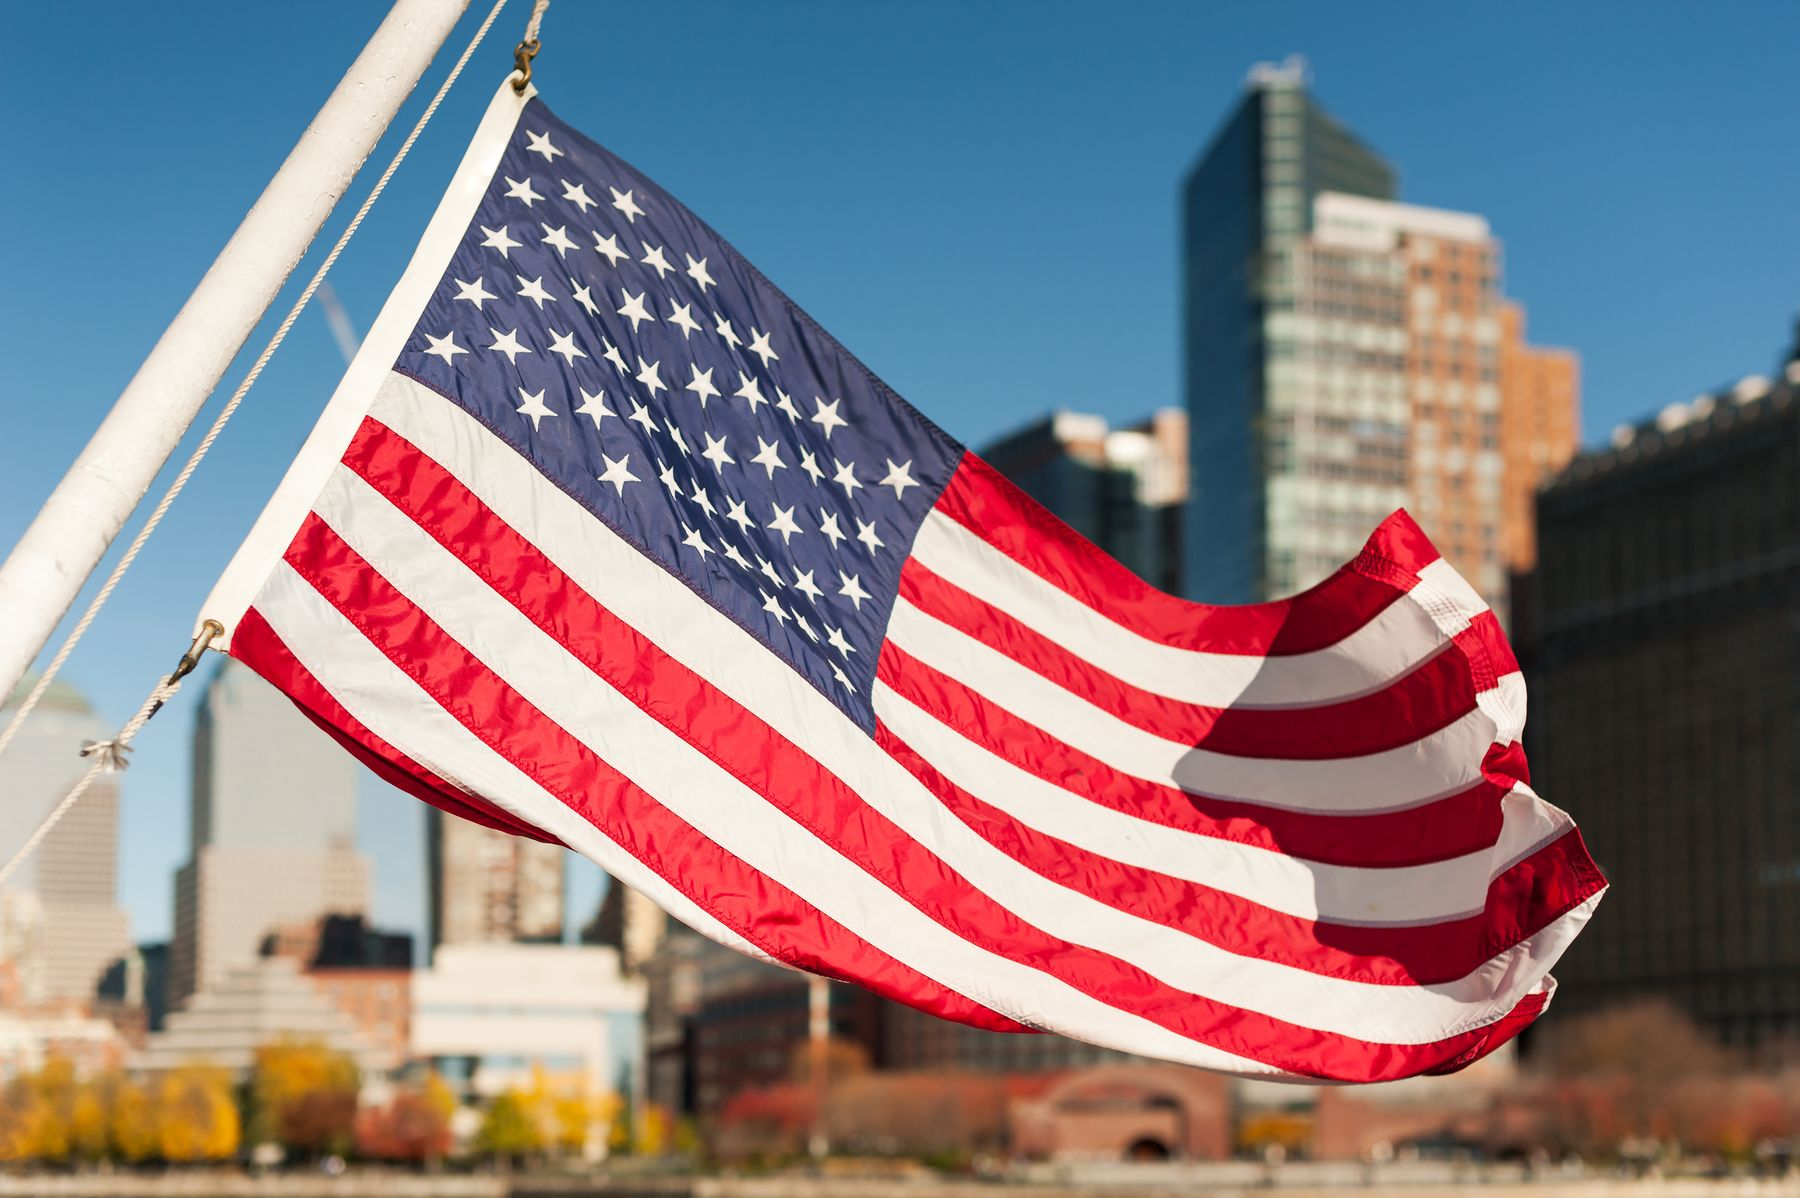 An American flag flies in front of a city skyline. Are you still deciding where to go Memorial Day weekend?